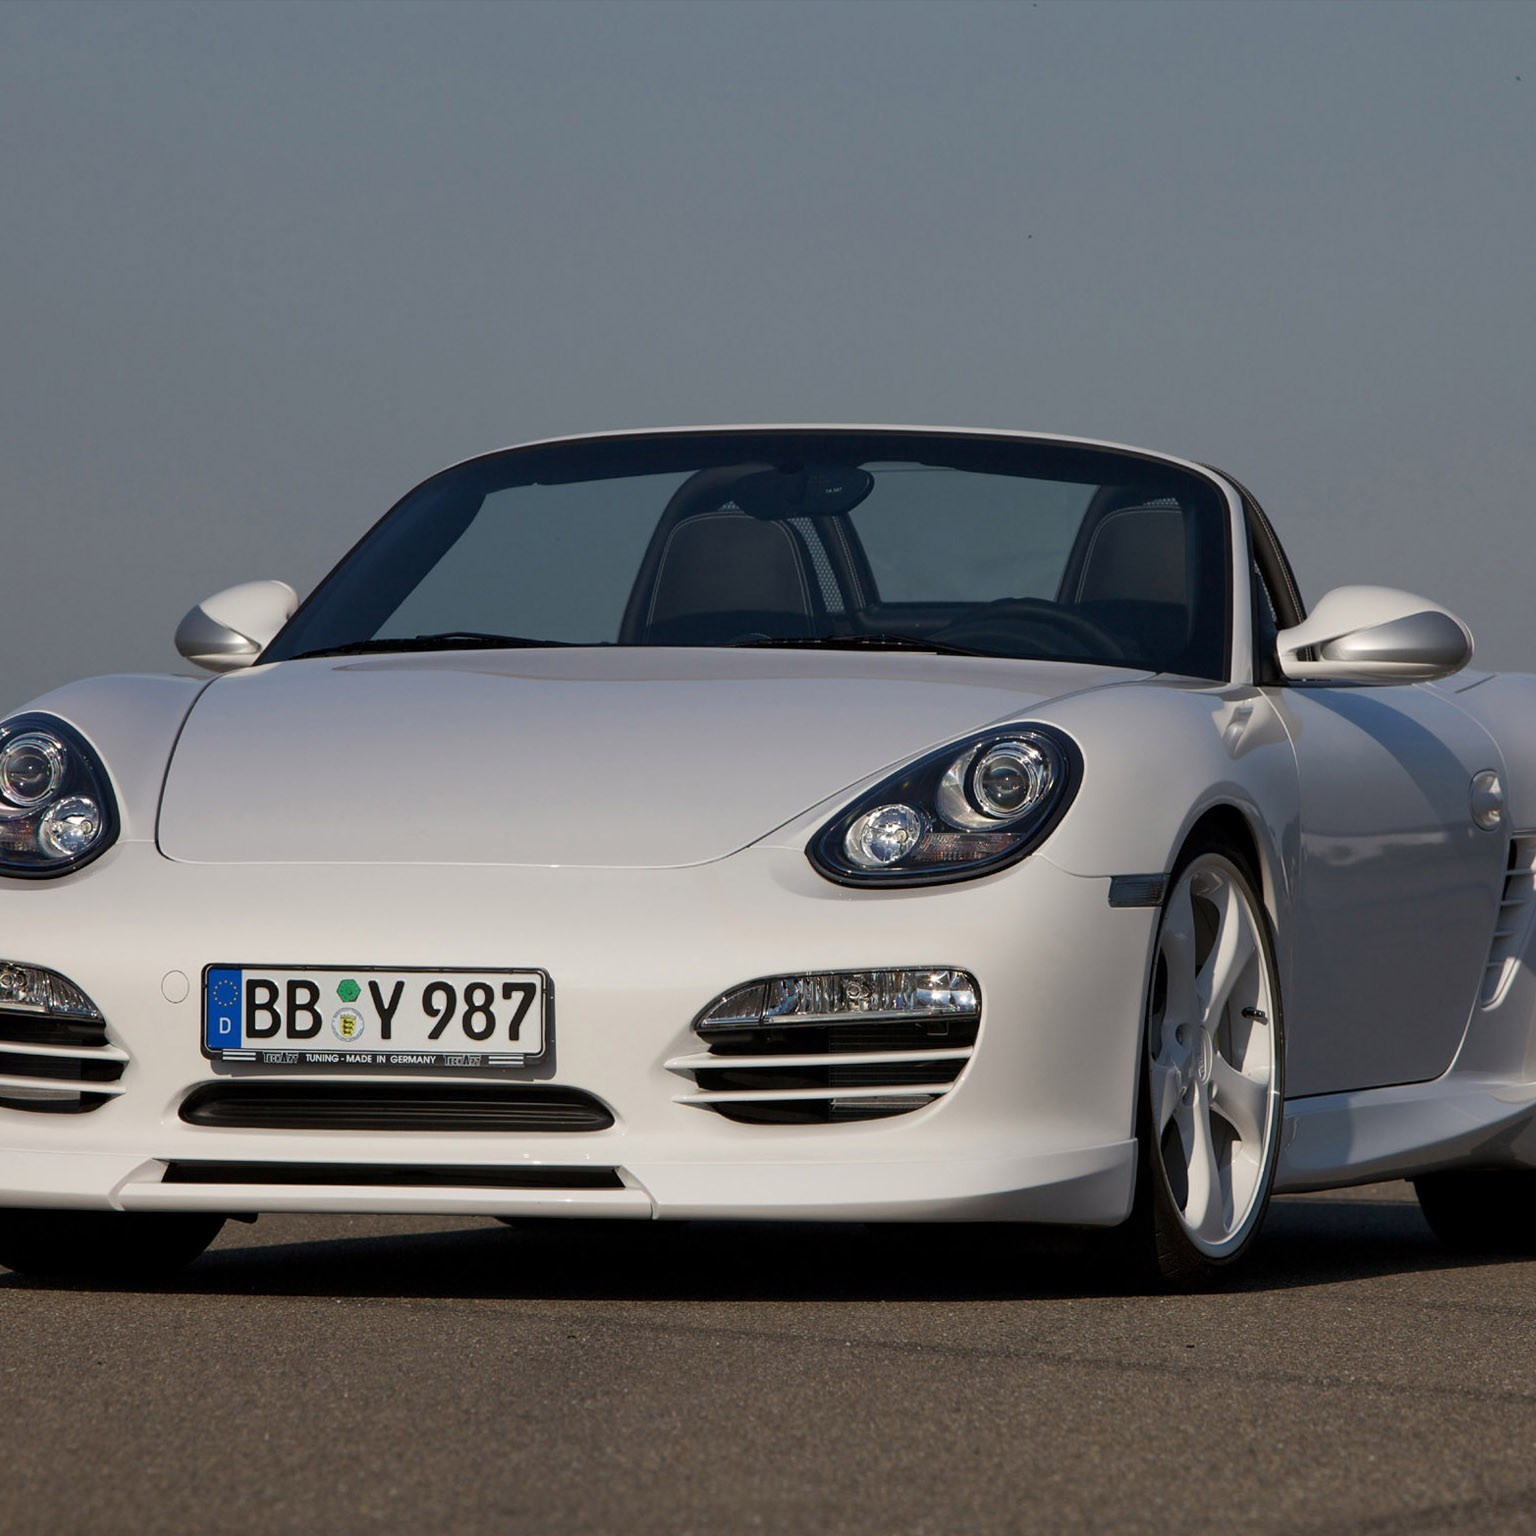 2009 Techart Porsche Boxster 987